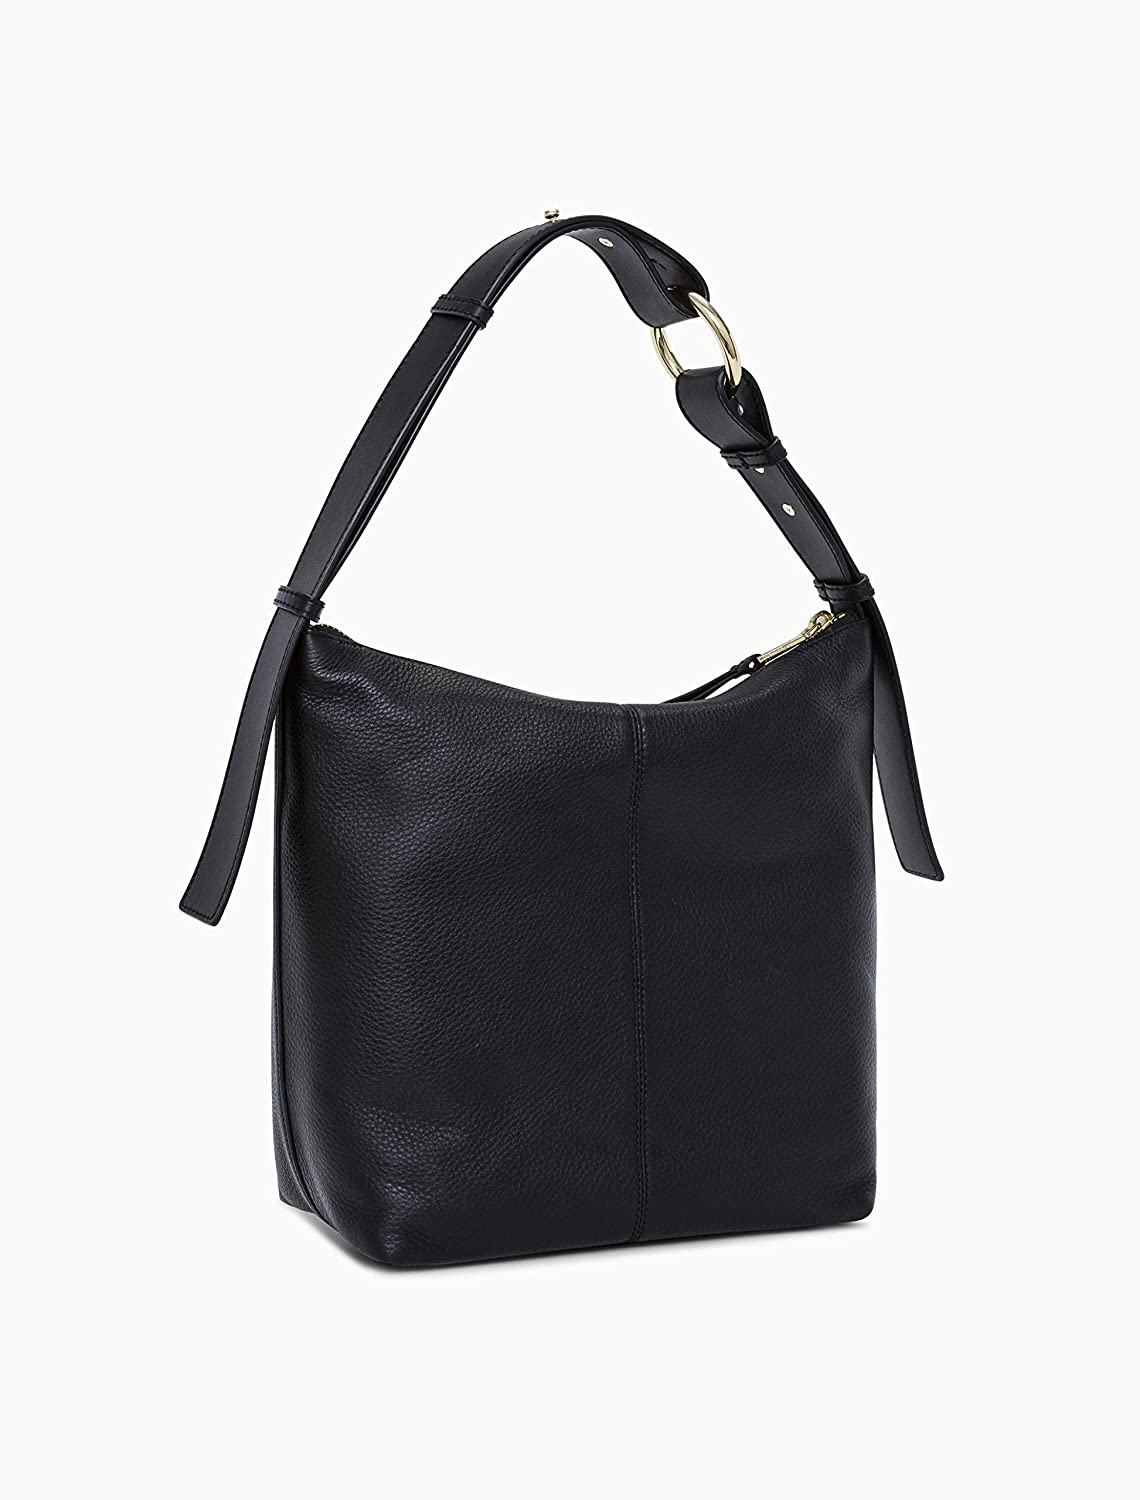 74236826547 Amazon.com: Calvin Klein womens Calvin Klein Liana Pebble Leather Belted  Top Zip Slouchy Hobo, black/gold, One Size: Clothing